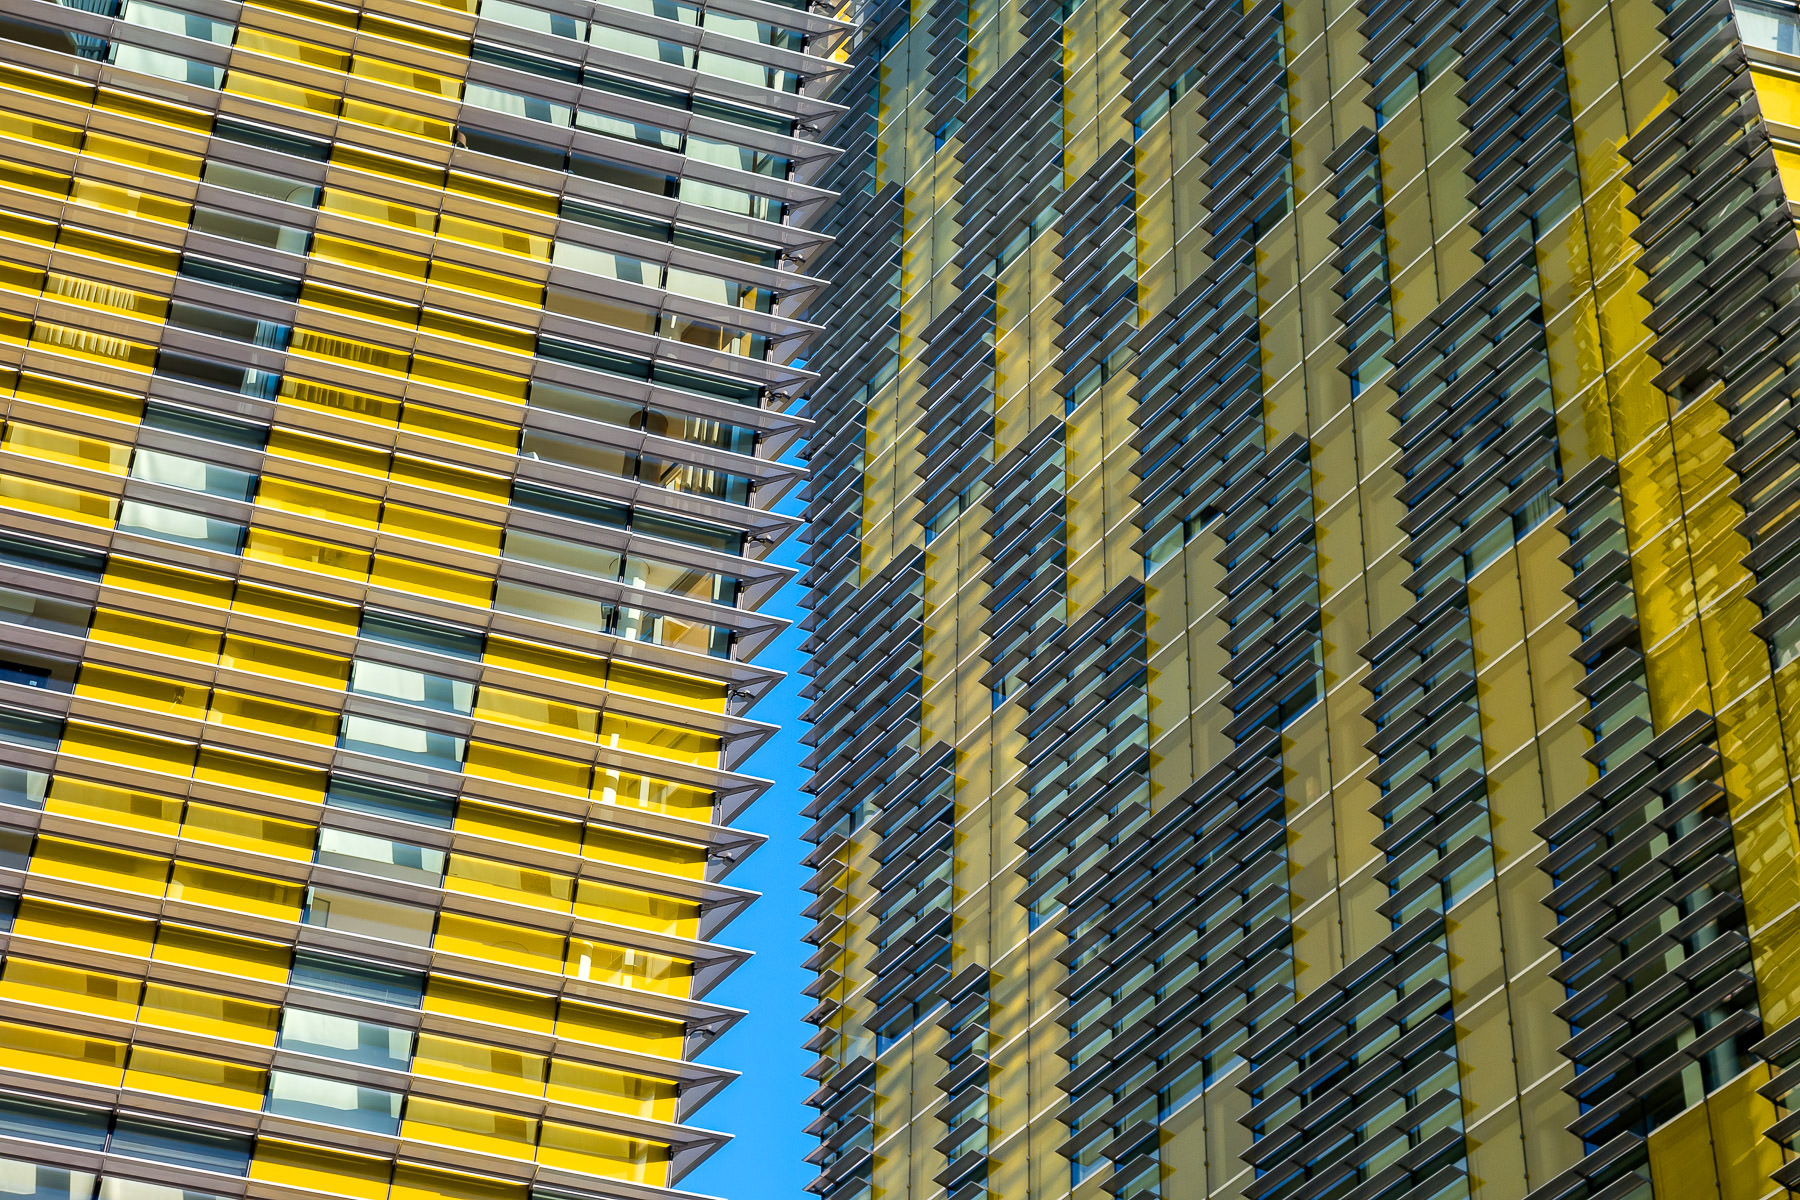 Exterior detail of the Veer Towers with a bit of blue sky peeking between at CityCenter, Las Vegas.